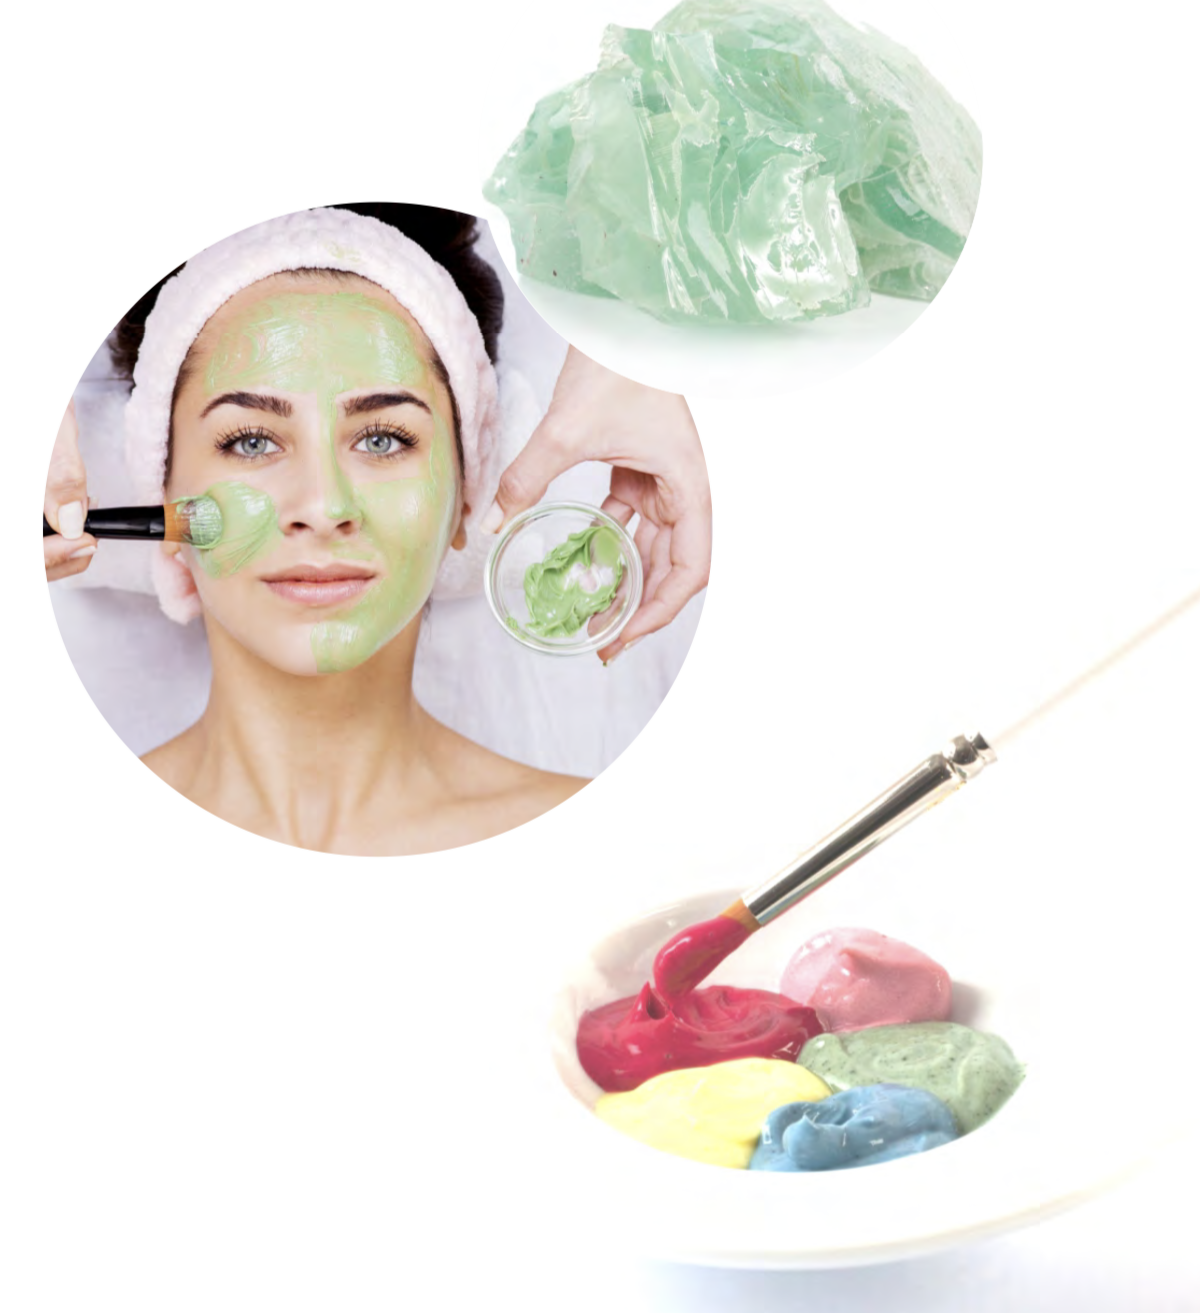 Image showing a face mask being applied on a ladies face with a brush